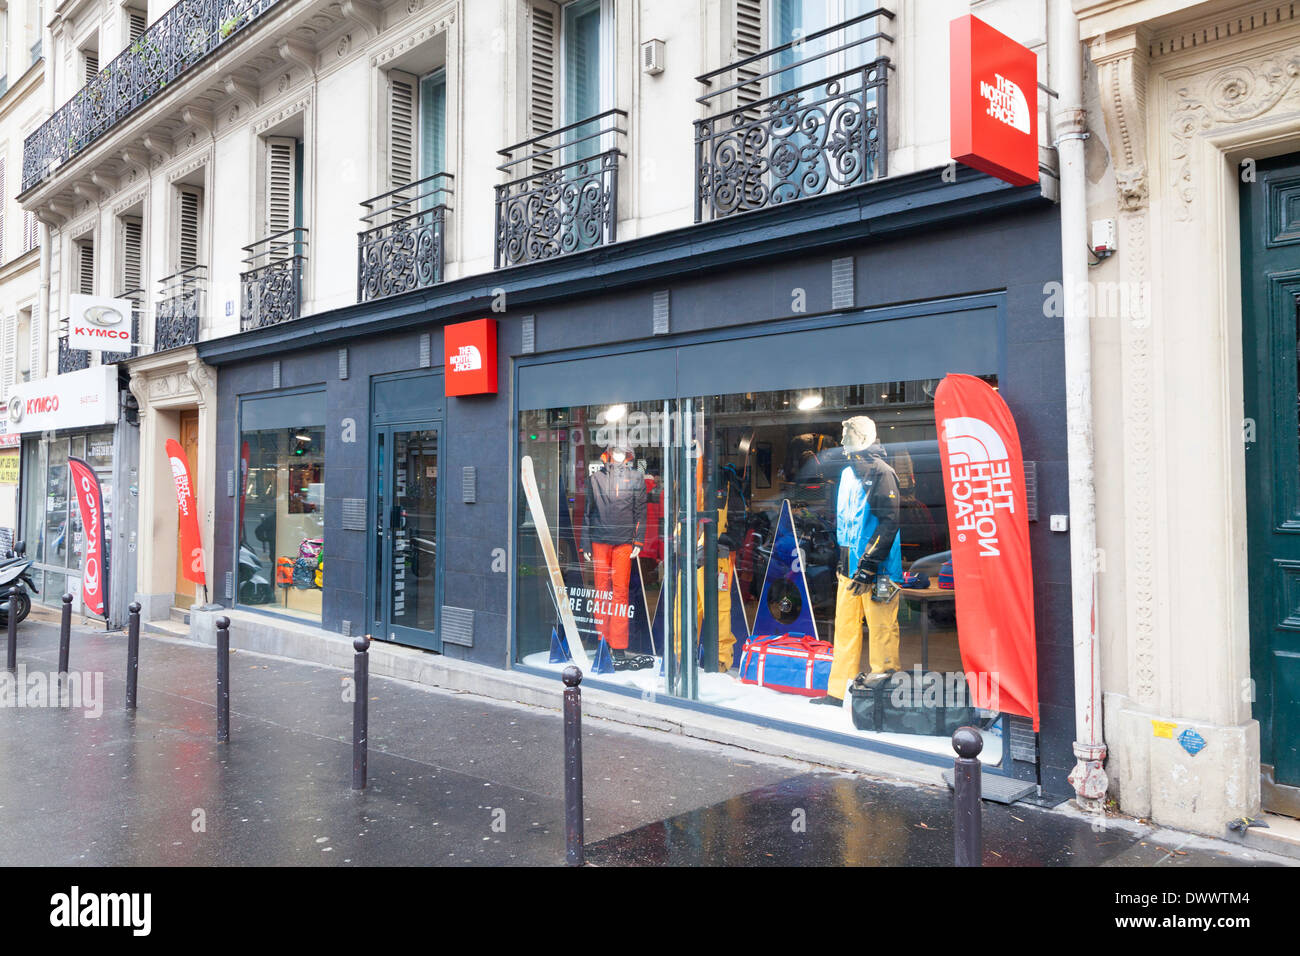 7294c6fa13 Exterior of The North Face store on Boulevard Beaumarchais, Paris, France